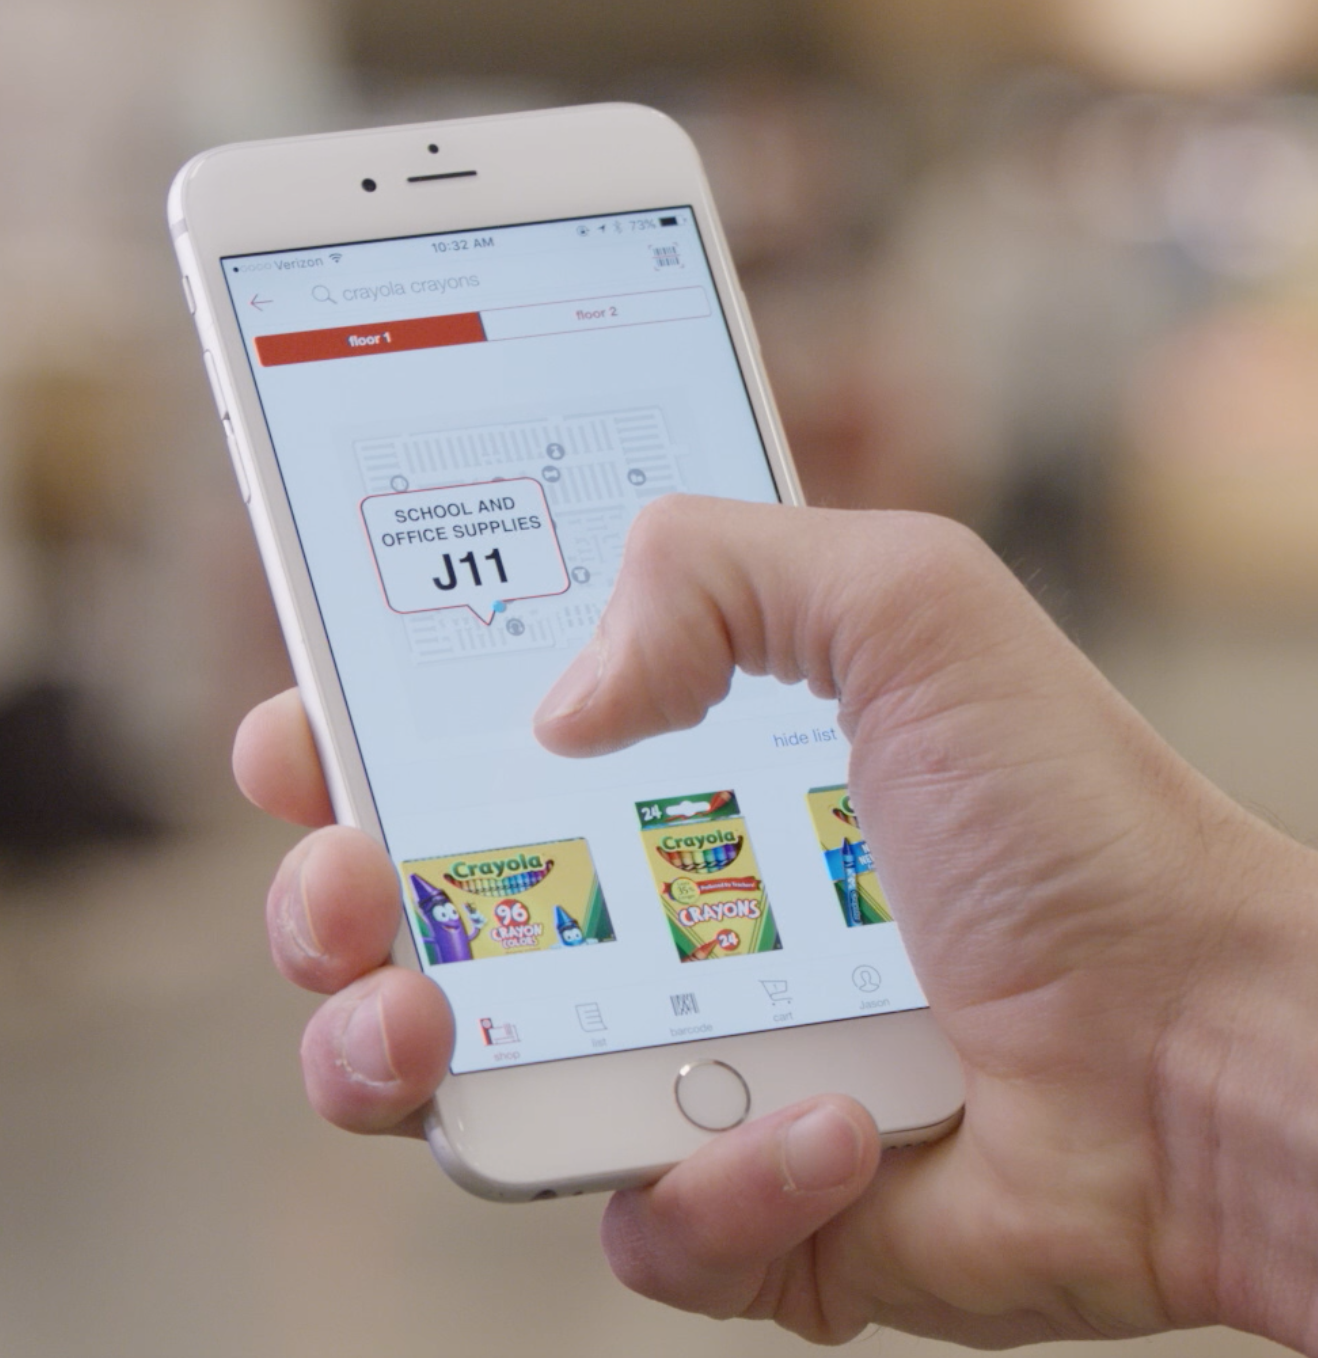 Target rolls out Bluetooth beacon technology in stores to